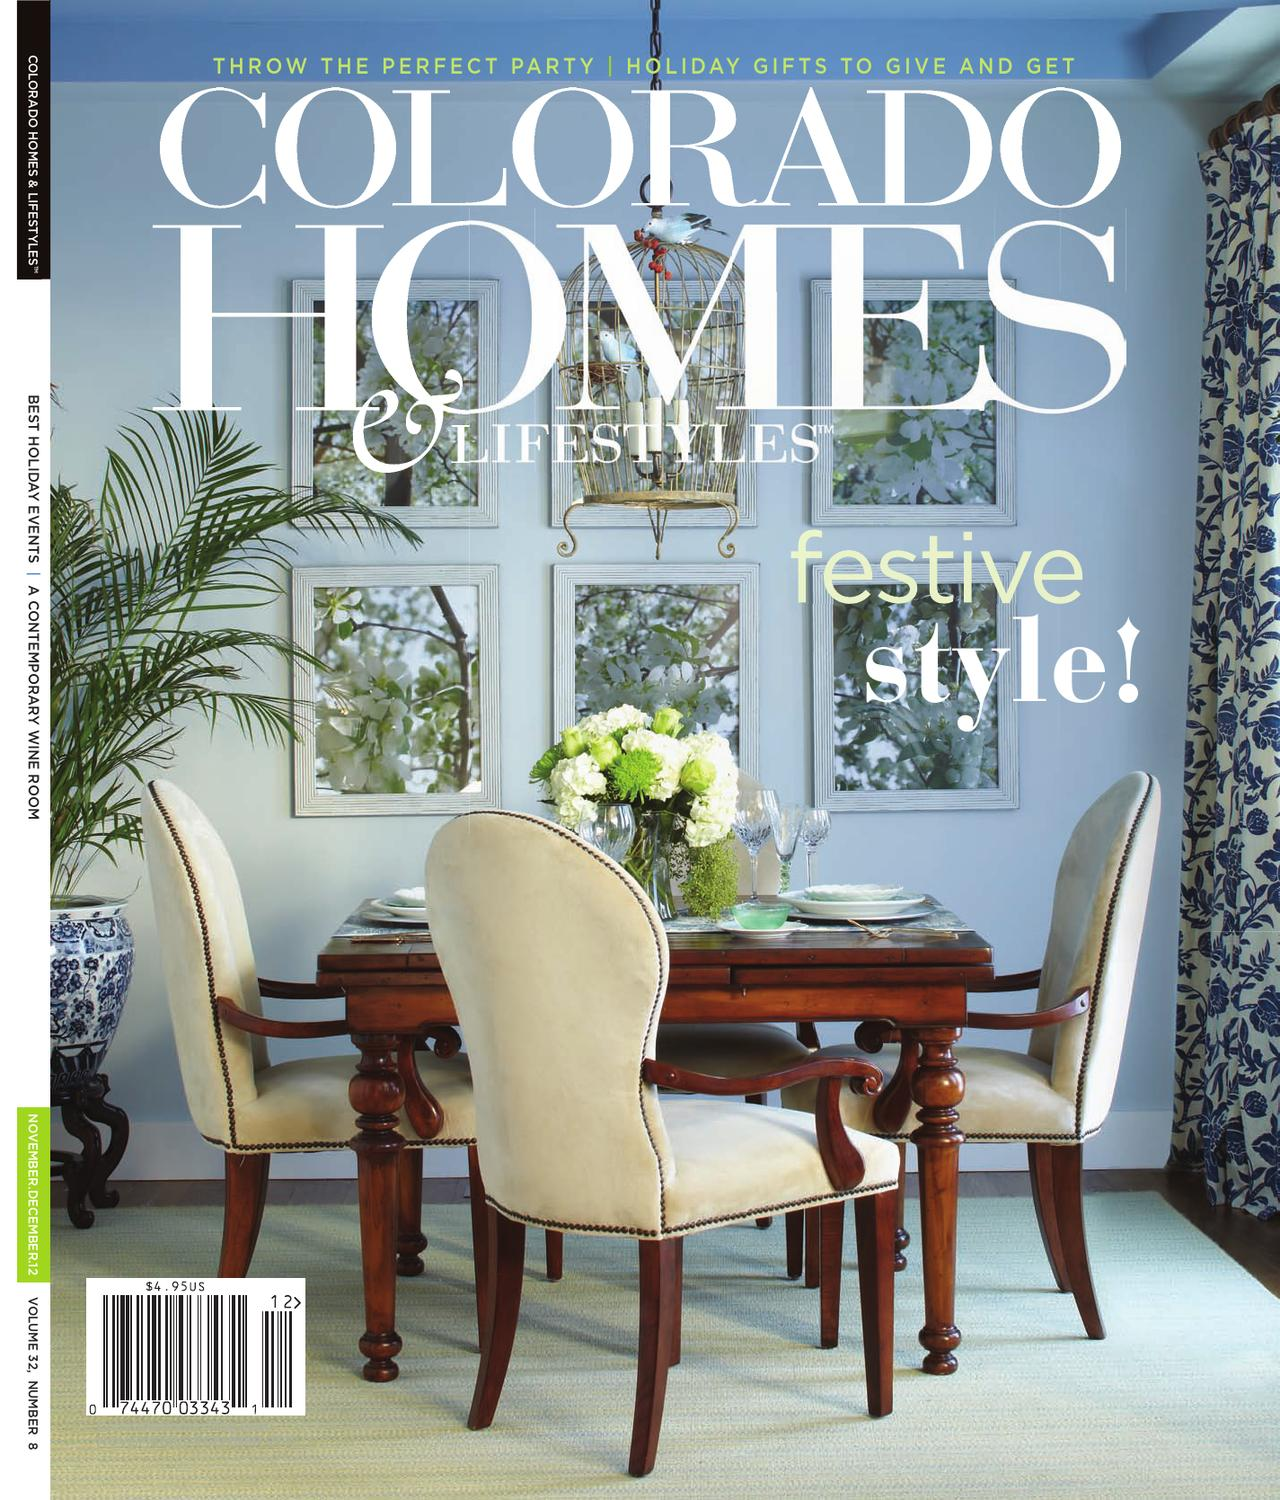 Colorado Homes & Lifestyles Nov-Dec 2012 by Network Communications ...